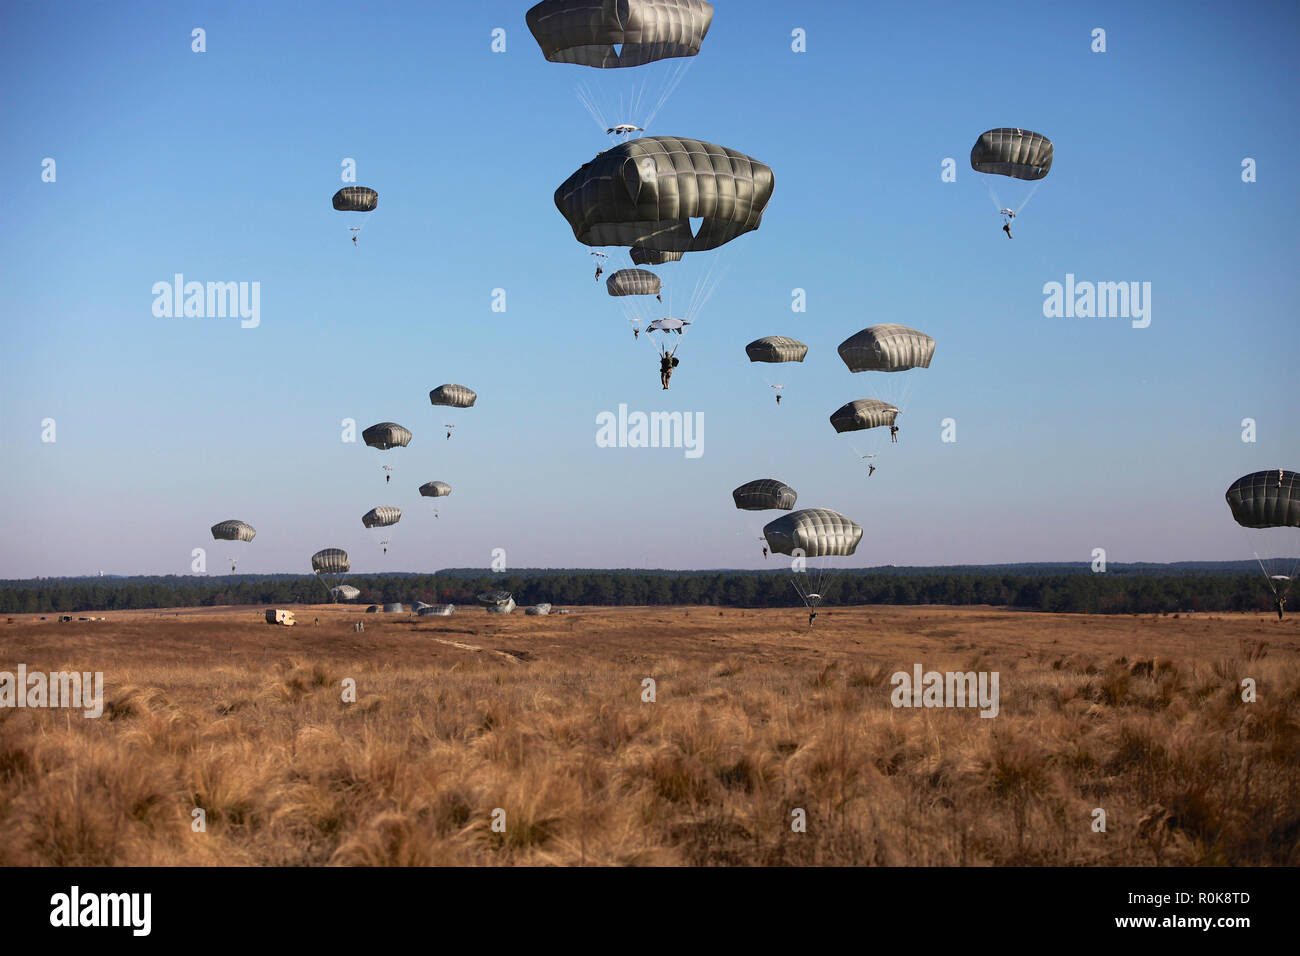 Paratroopers fill the sky for Operation Toy Drop at Fort Bragg, North Carolina. - Stock Image